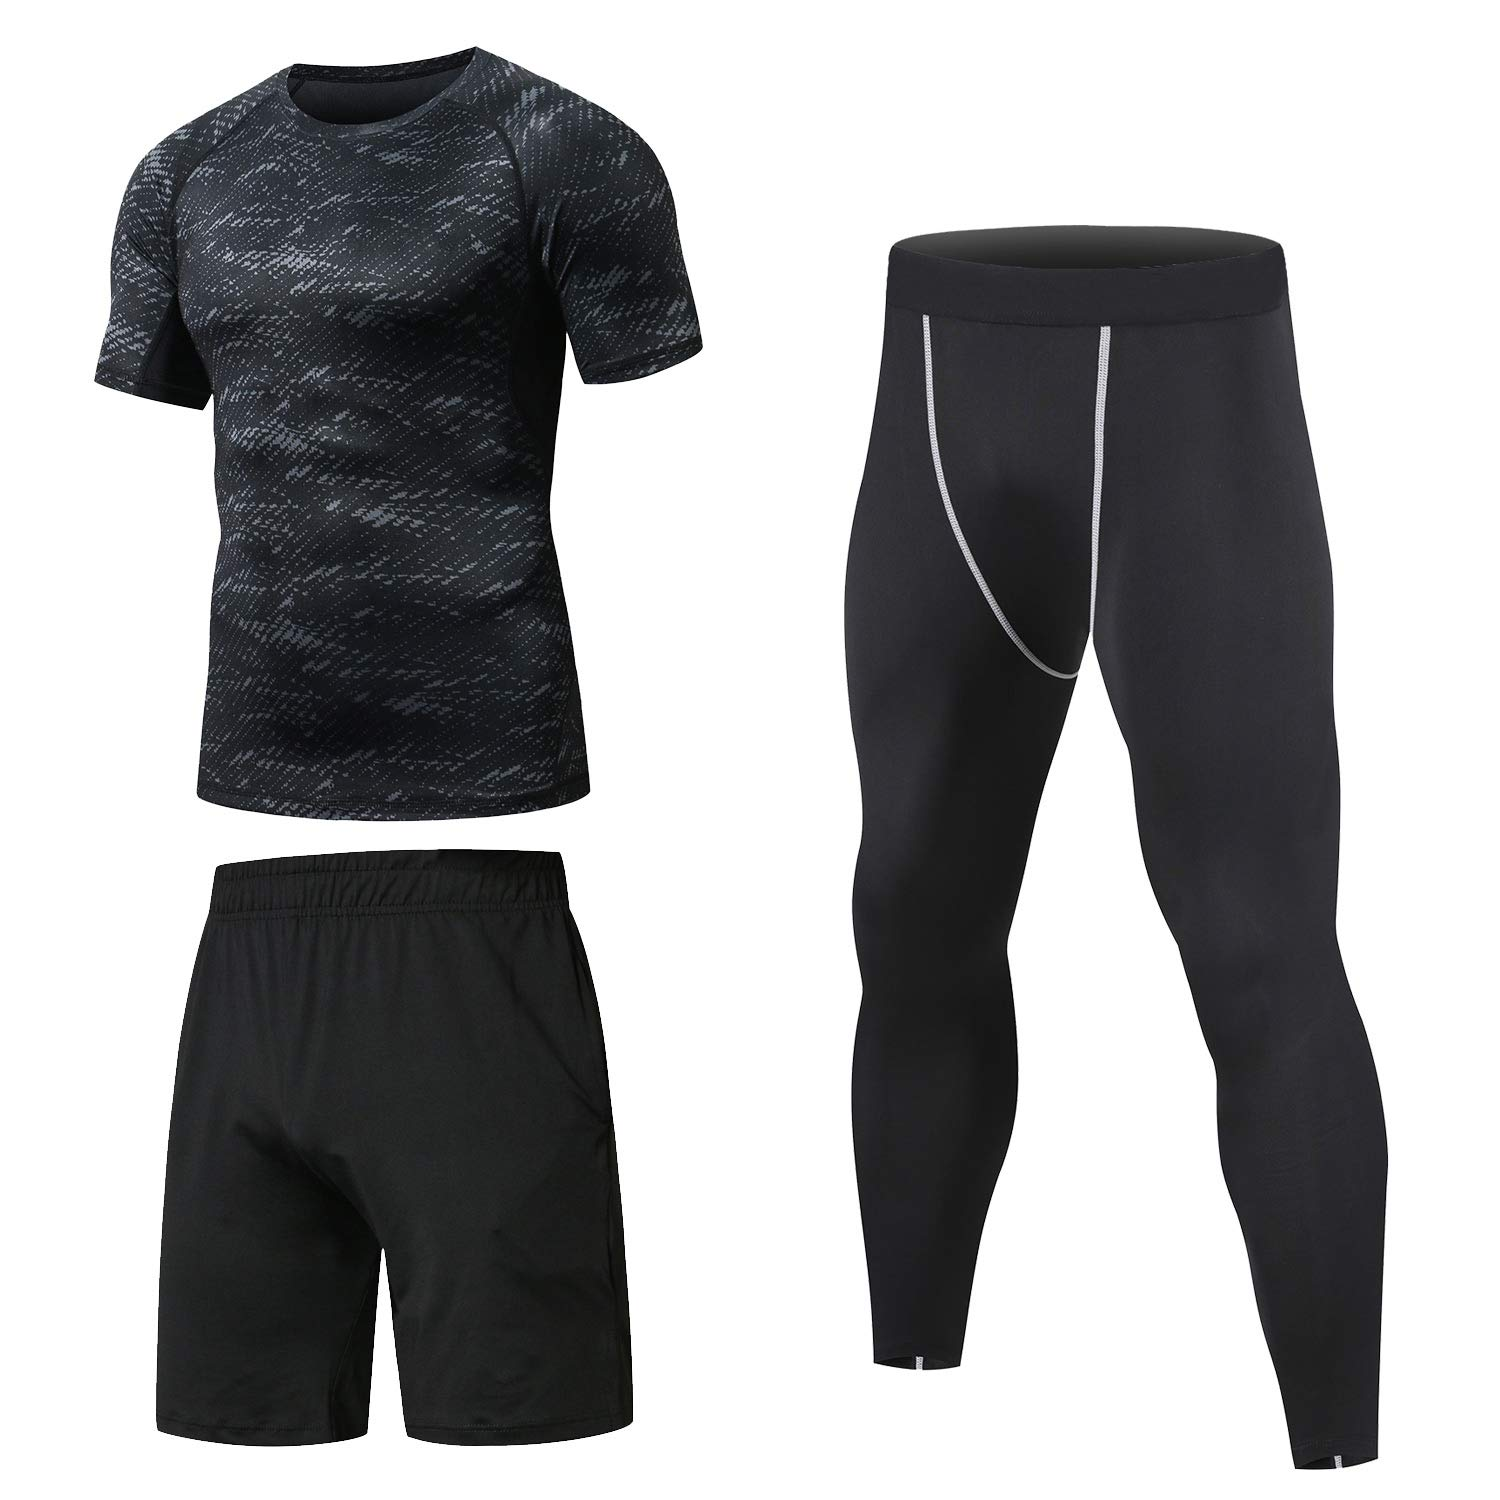 Niksa 3 Pcs Men's Workout Clothes Set with Compression Pants, Sweat-Wicking Shirt and Loose Fitting Shorts